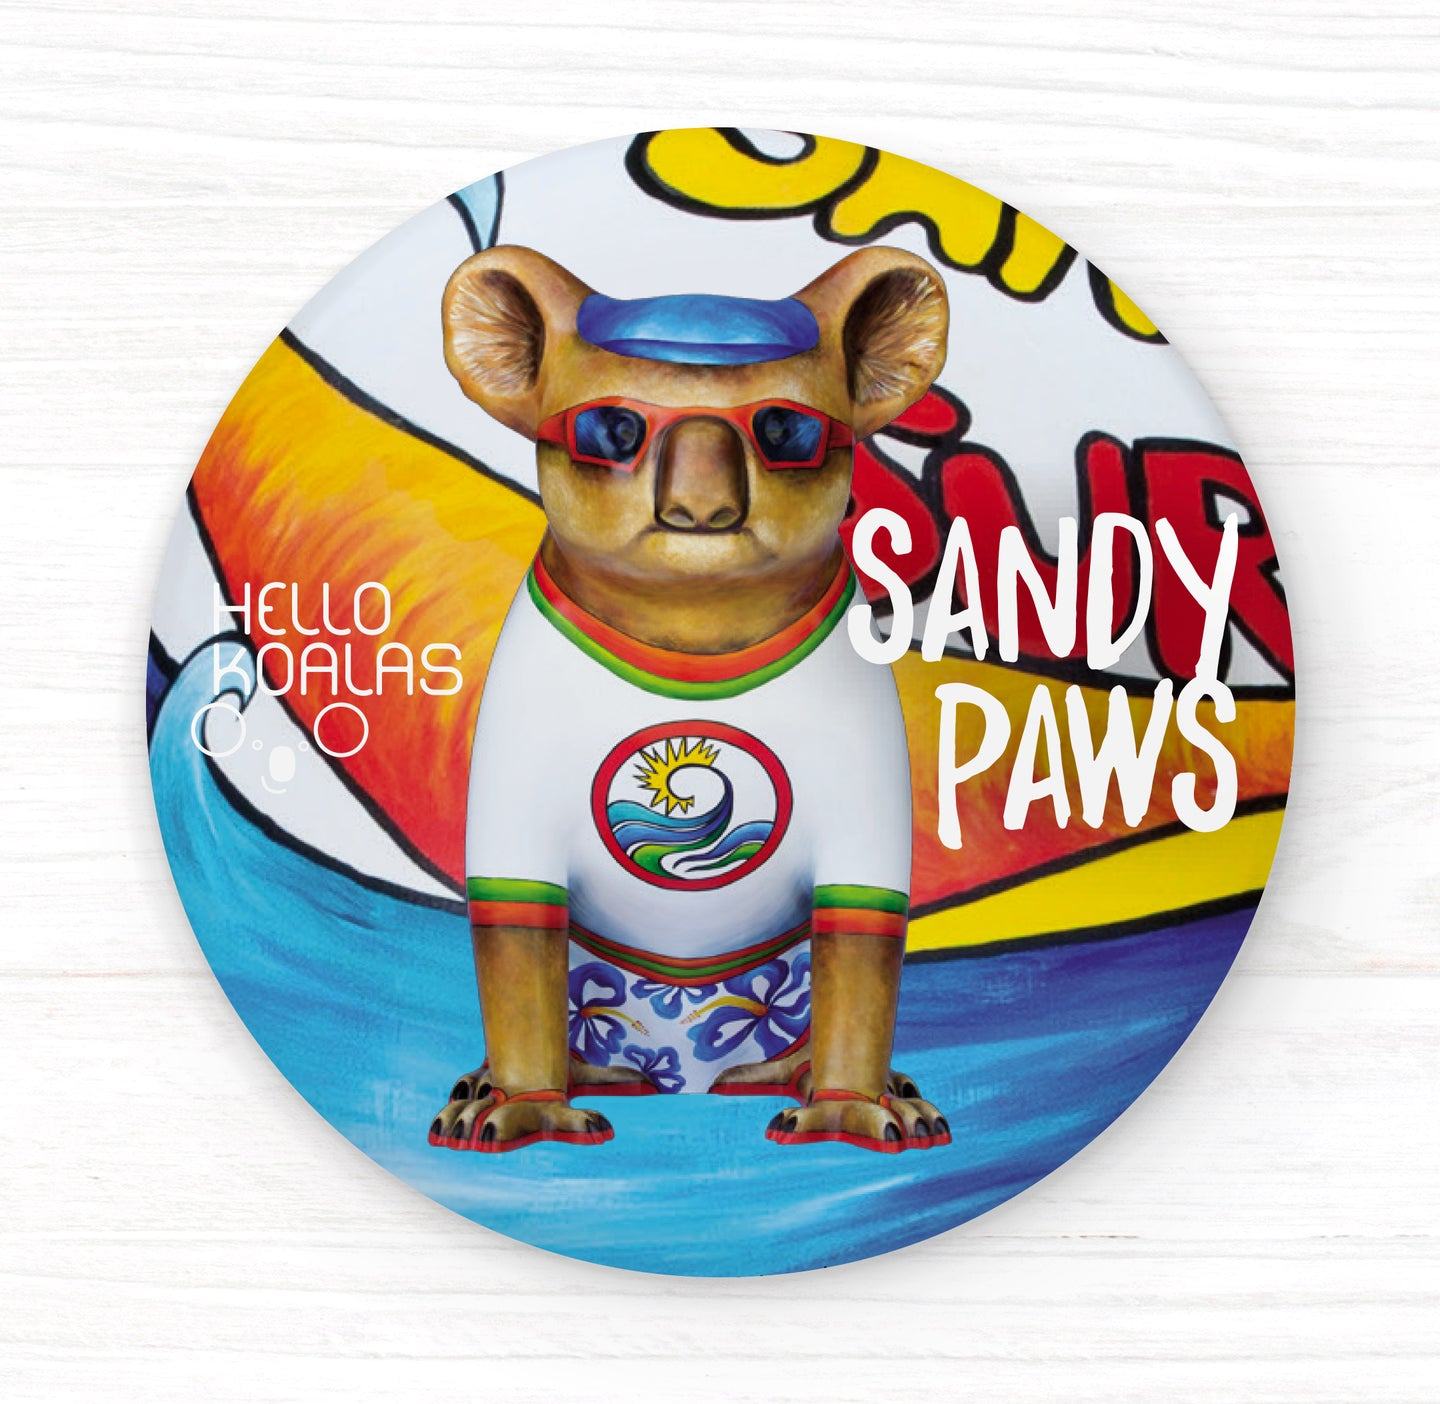 Hello Koalas Sandy Paws Badge